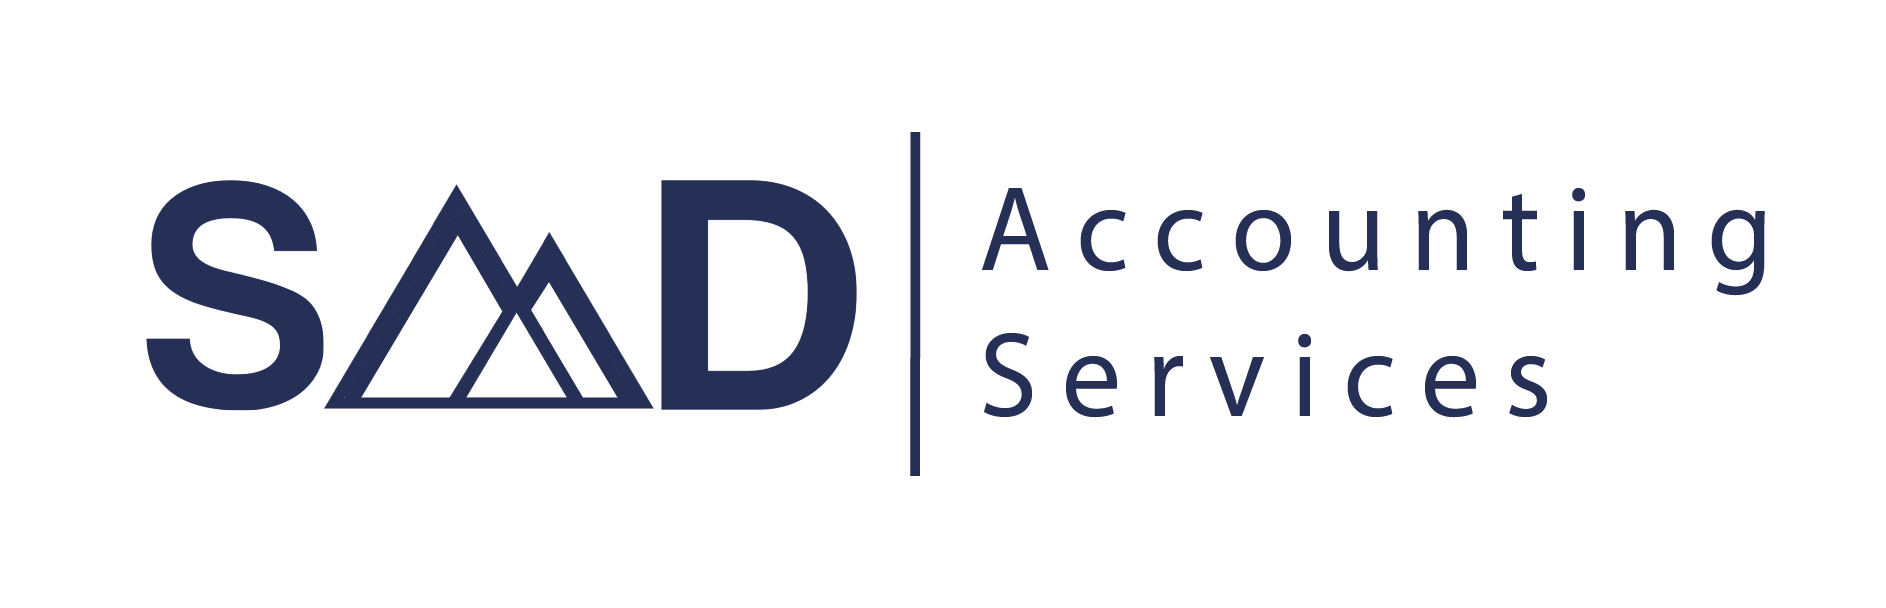 Logo for S-M-D Accounting Services L-L-C in navy blue